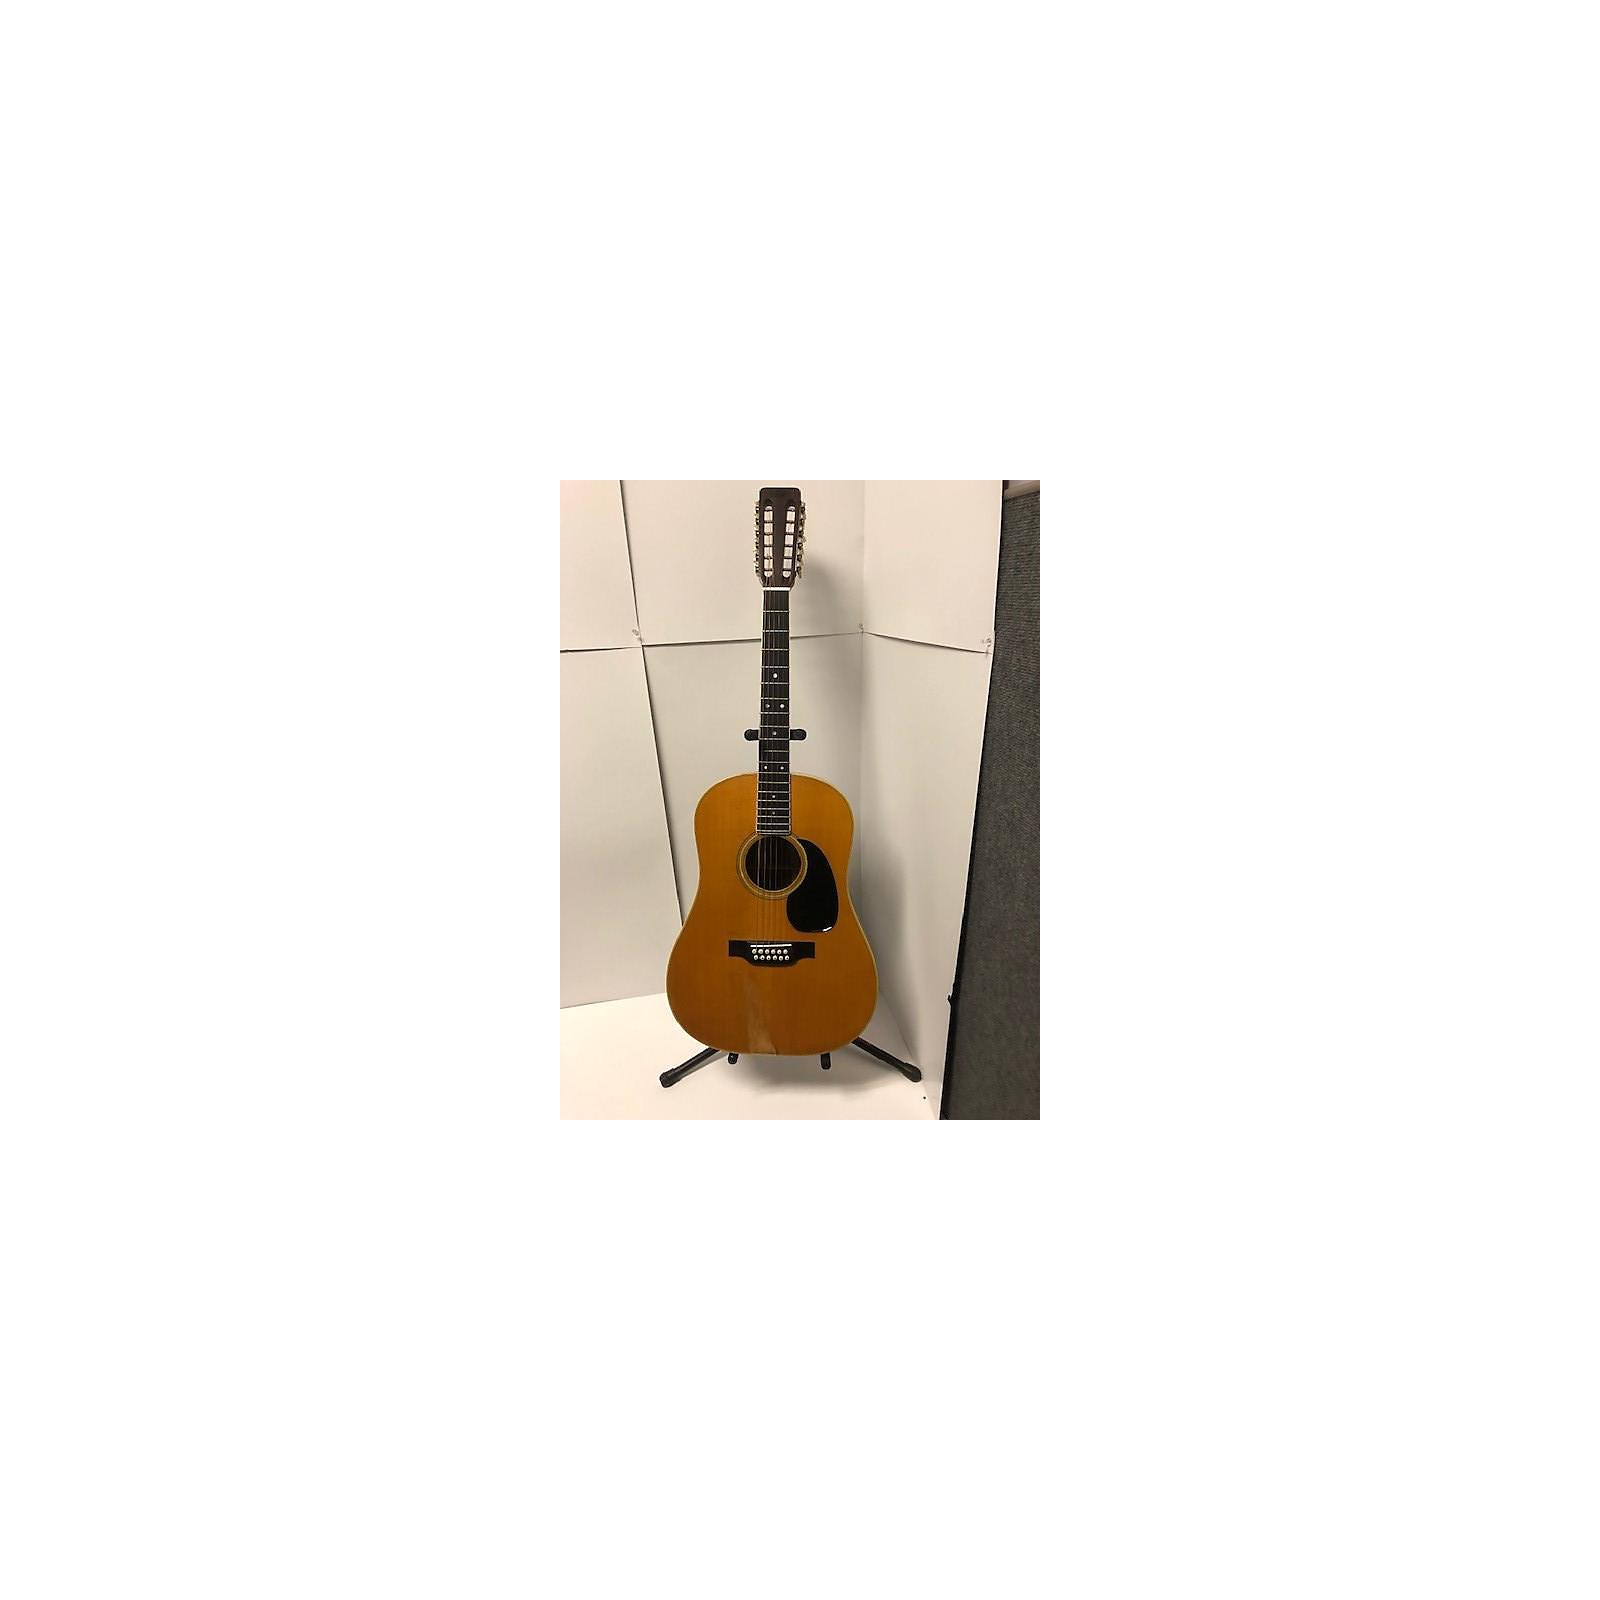 Martin 1970 D12-35 12 String Acoustic Guitar